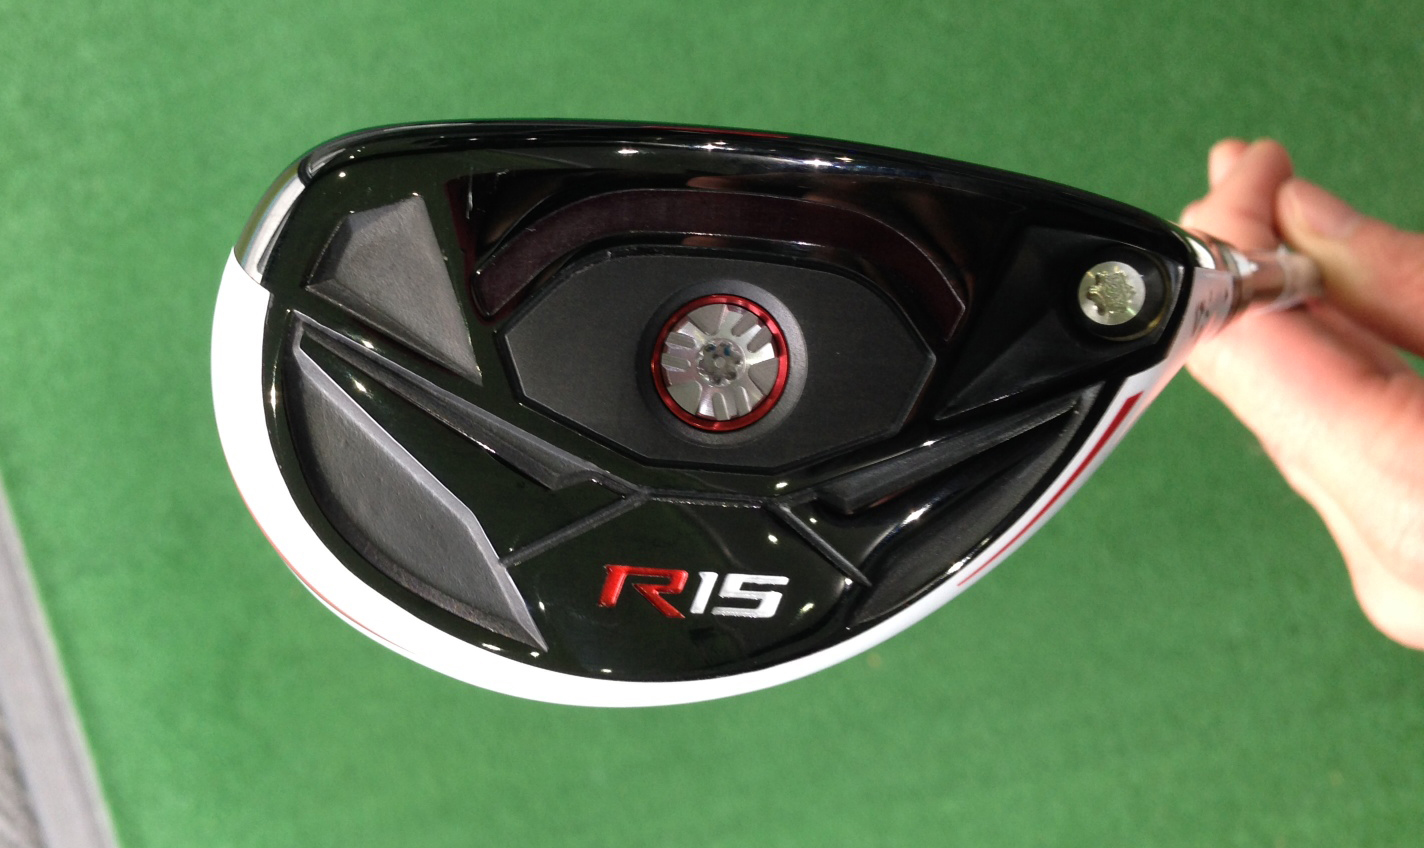 The TaylorMade R15 offers three loft settings